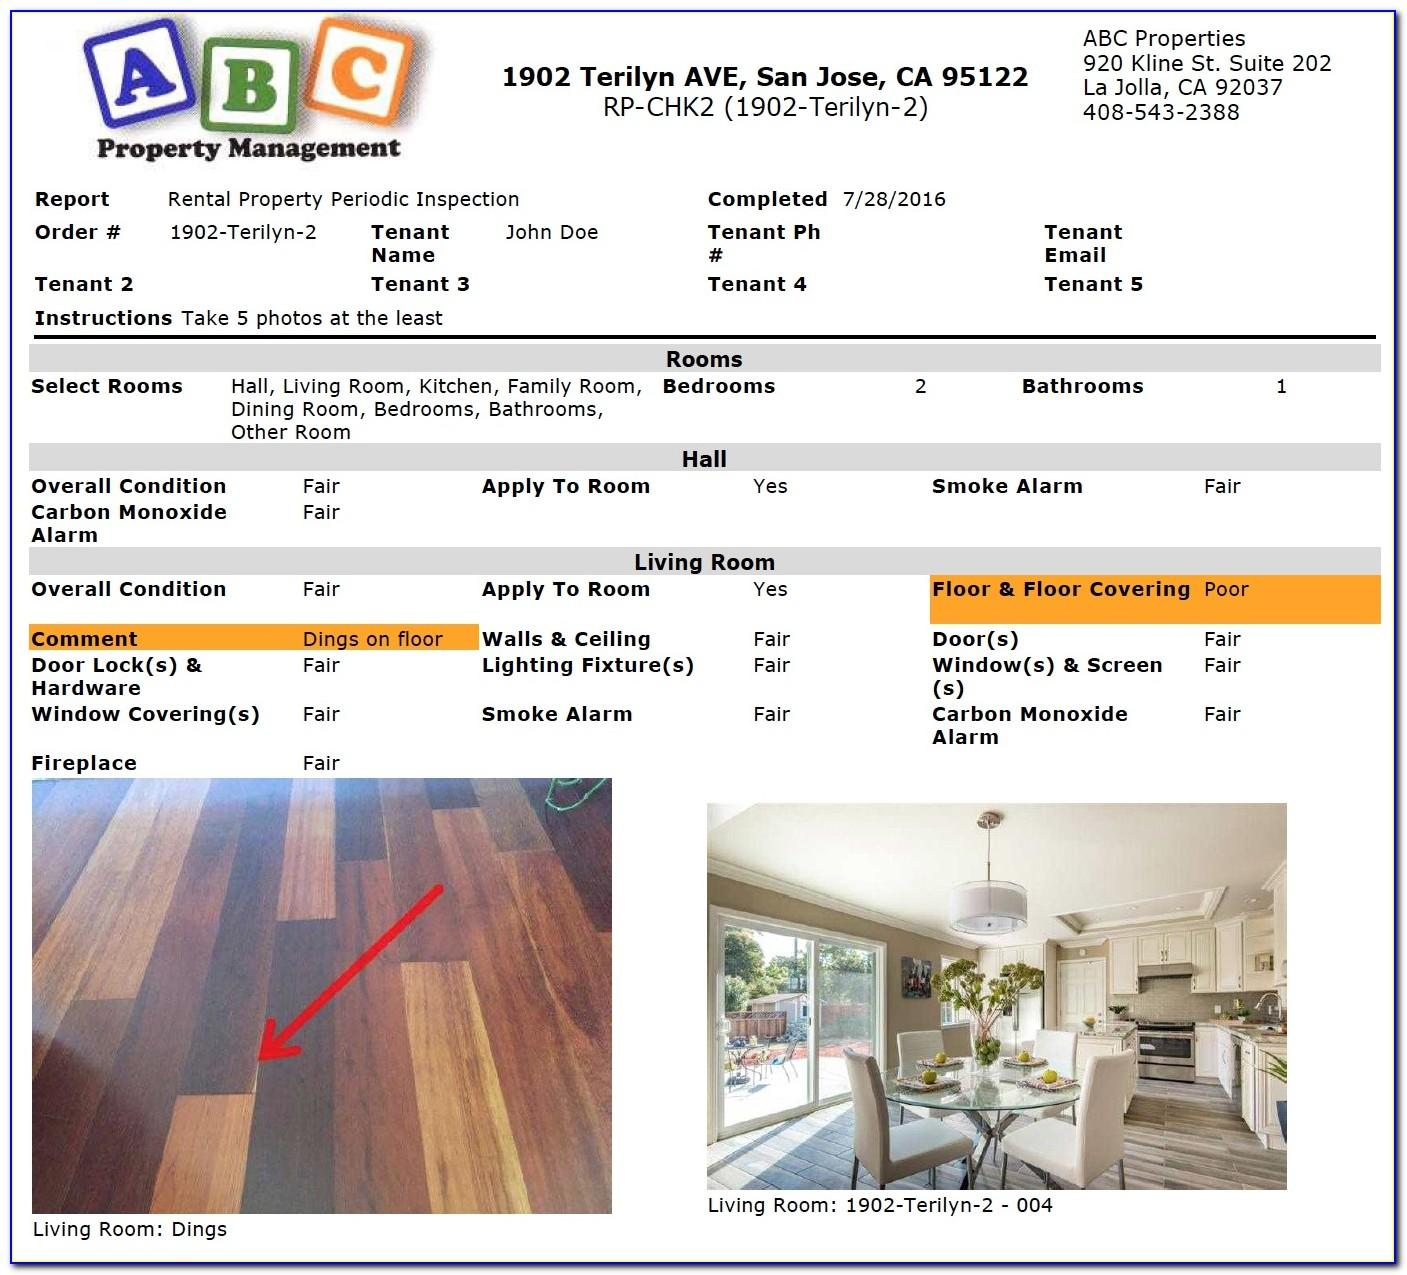 Residential Property Condition Assessment Checklist